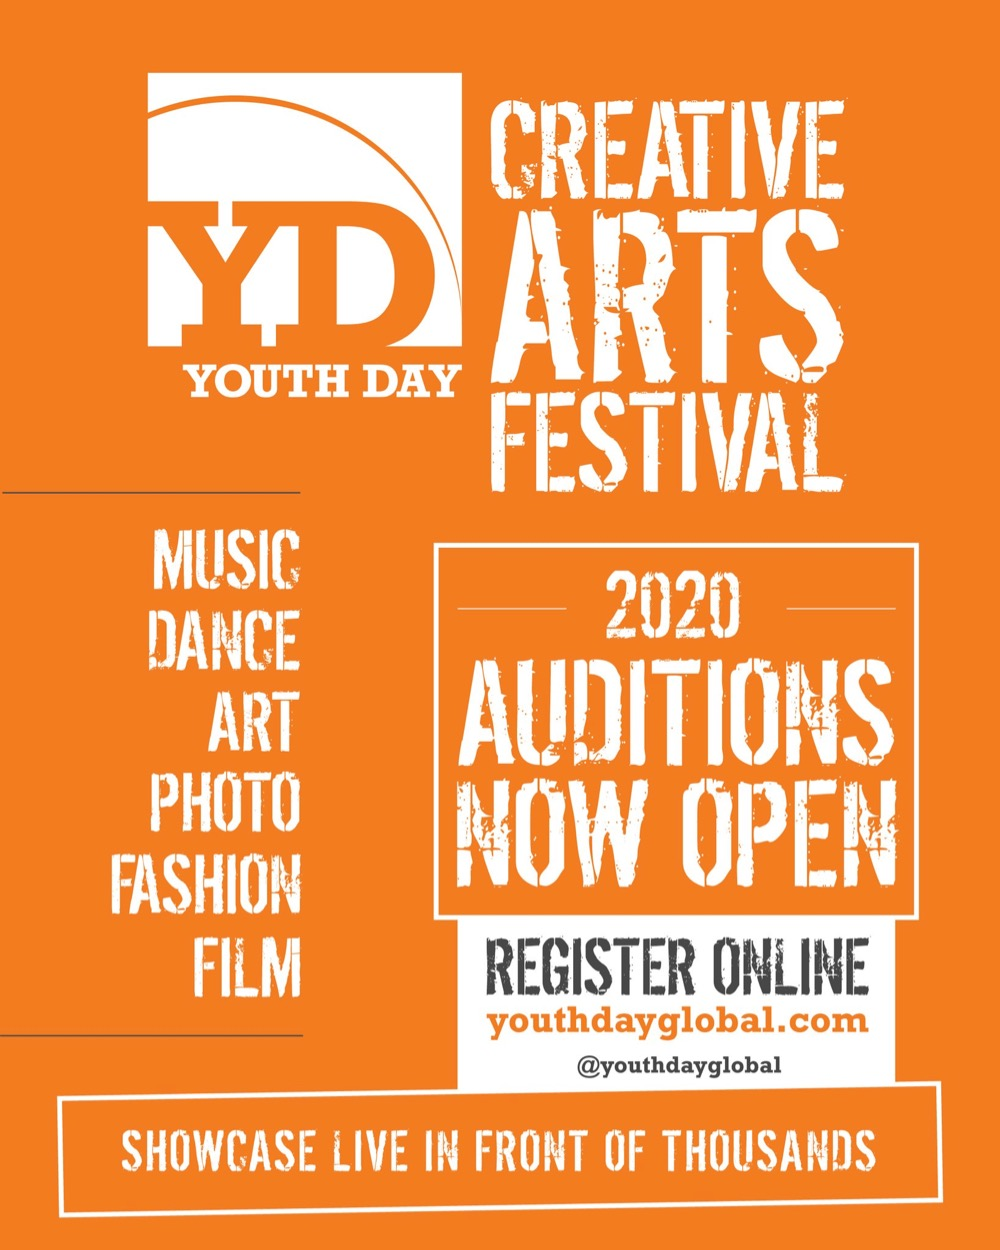 Youth Day Creative Arts Festival Call for Auditions Poster